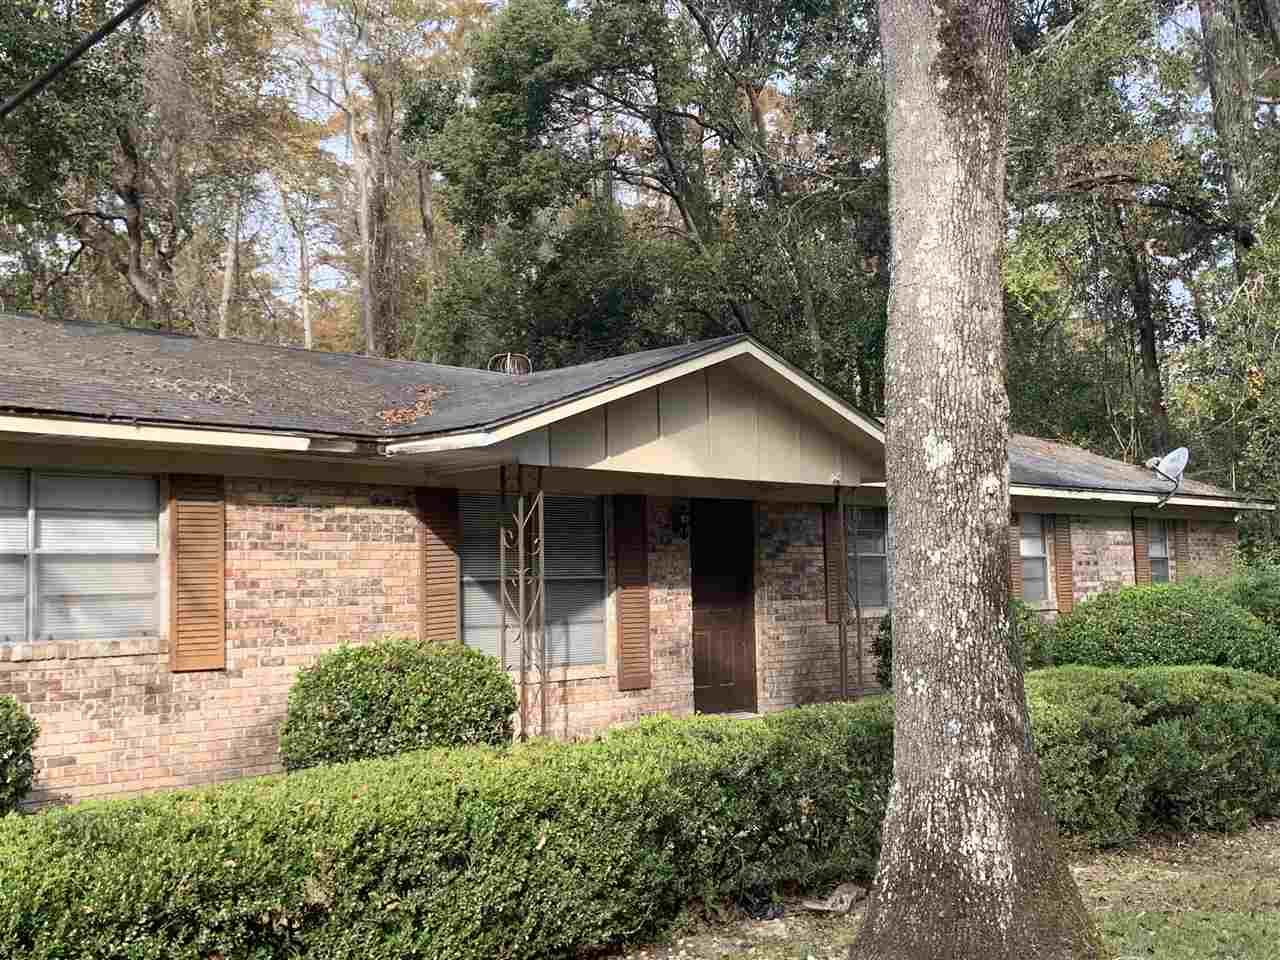 Photo for 206 CACTUS Street, TALLAHASSEE, FL 32304 (MLS # 313375)